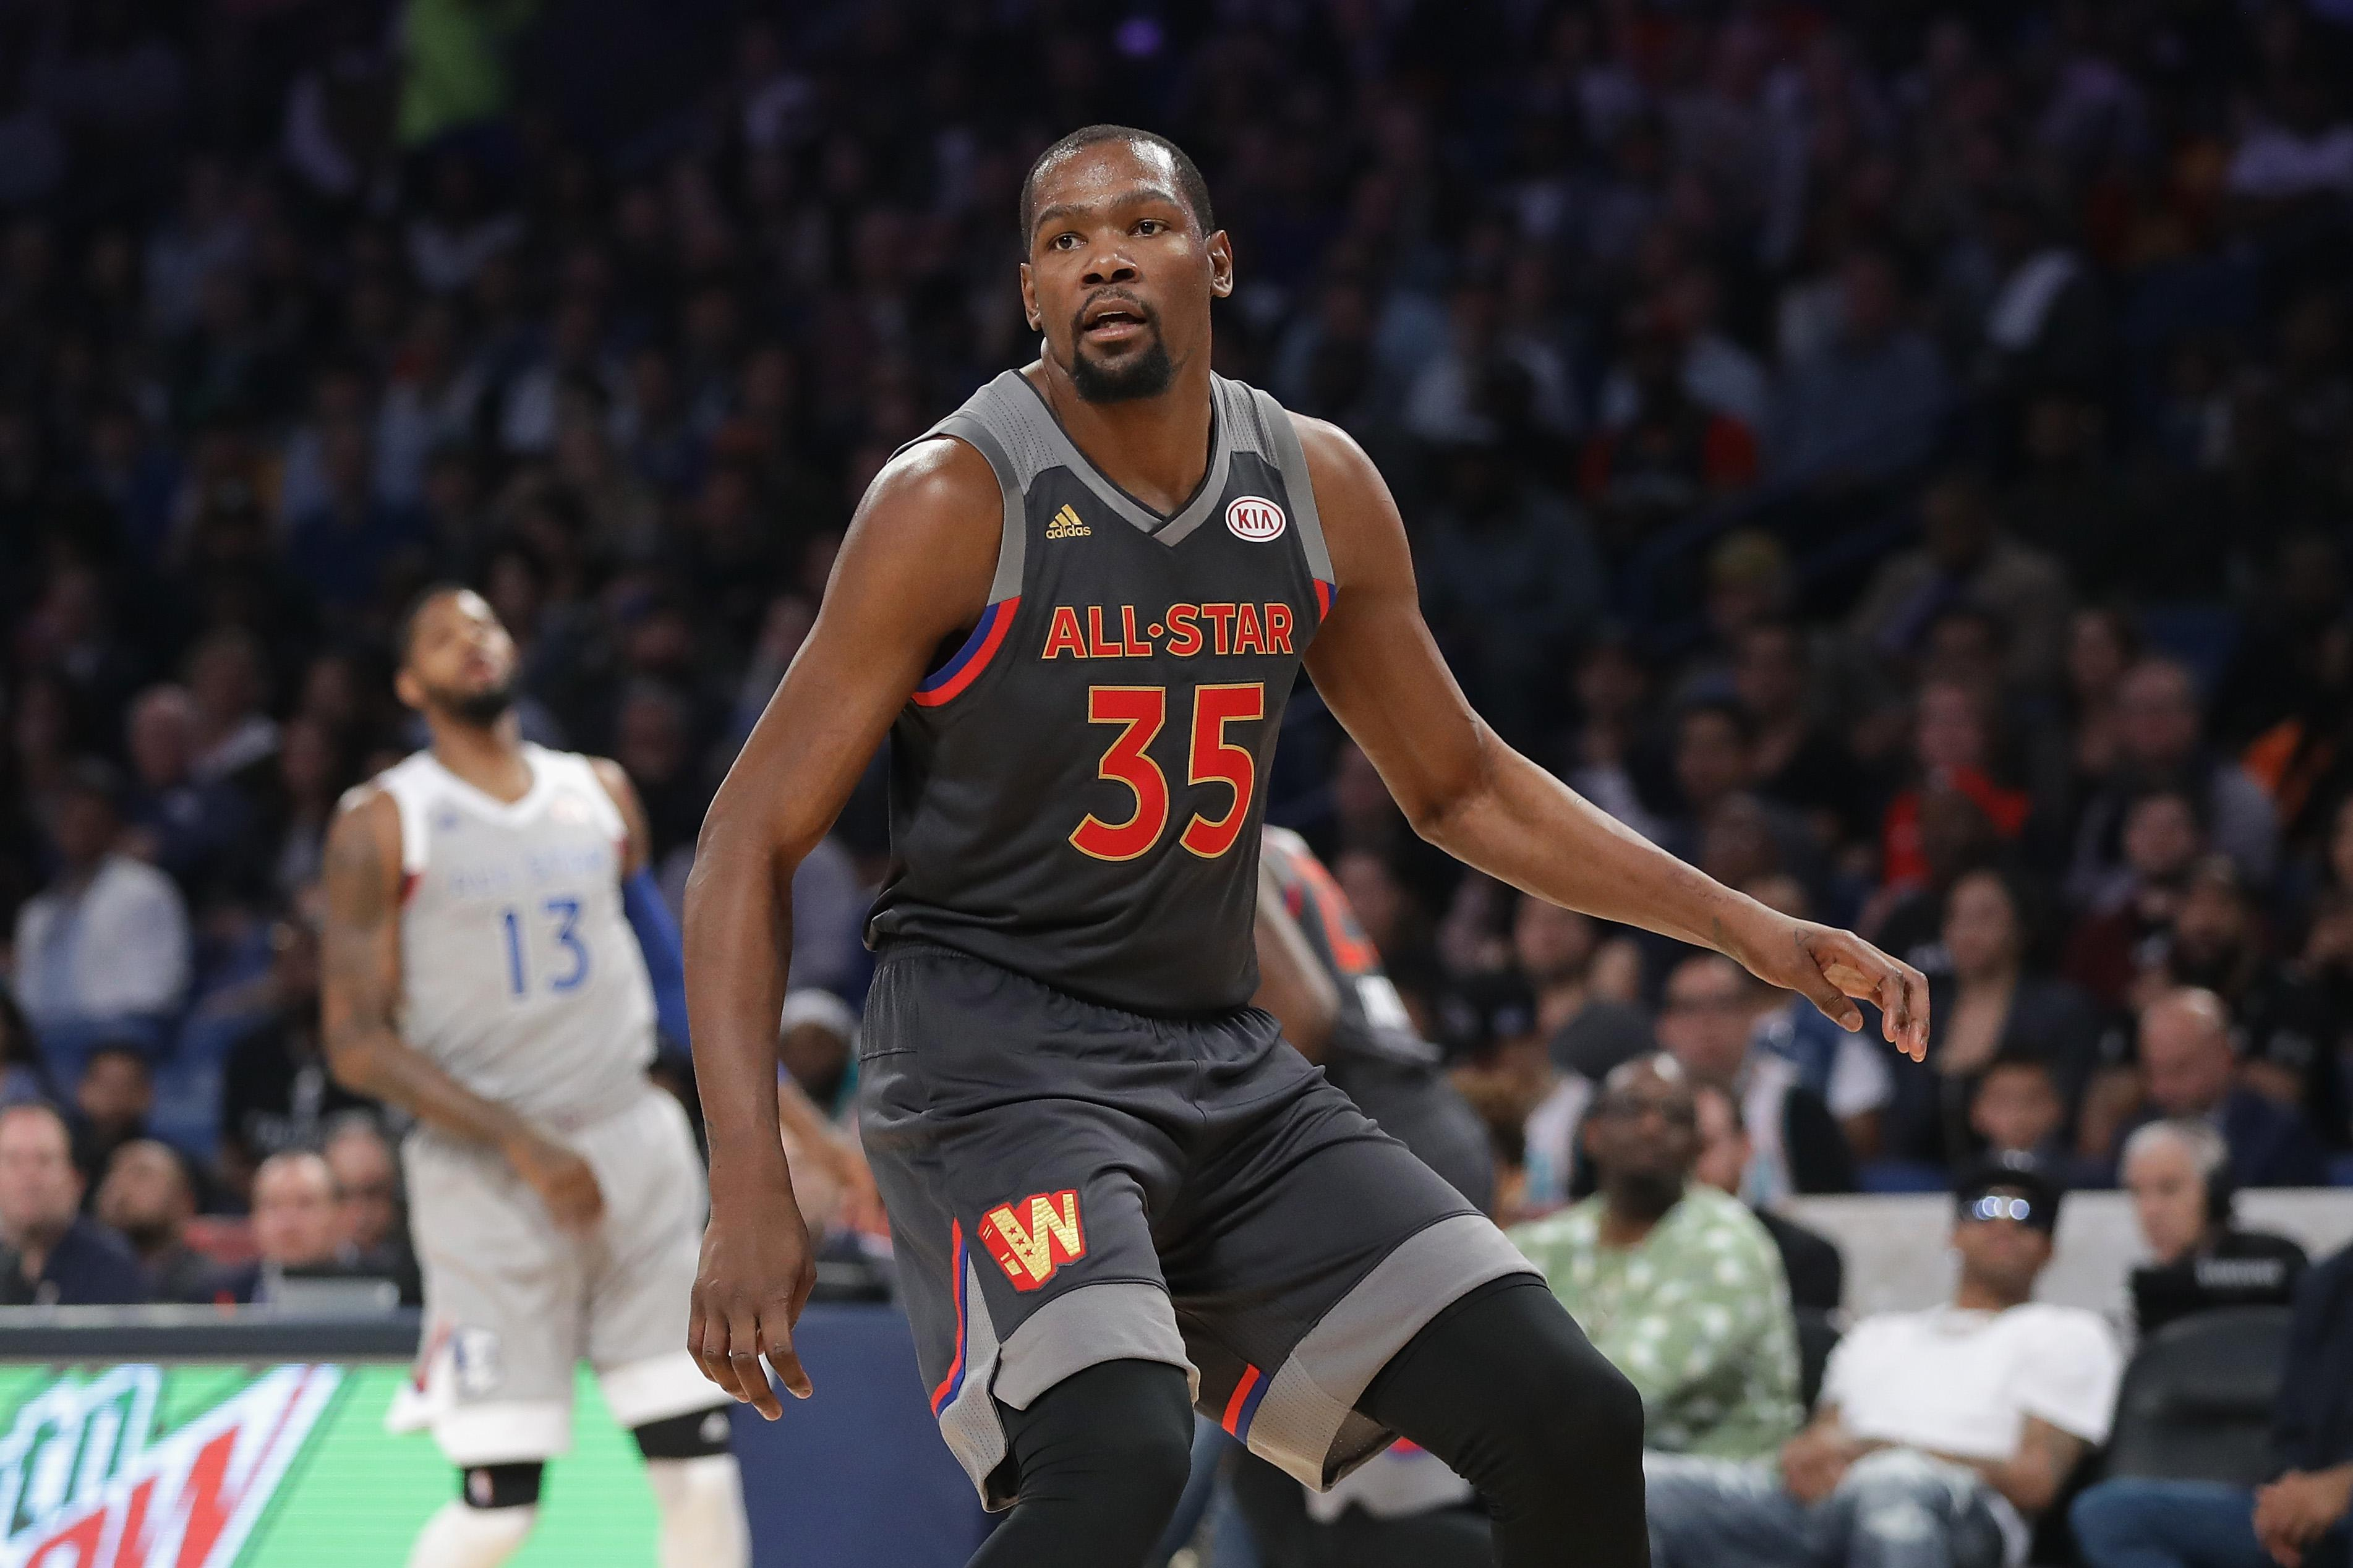 Kevin Durant, still a couple weeks away, will return to minutes restriction